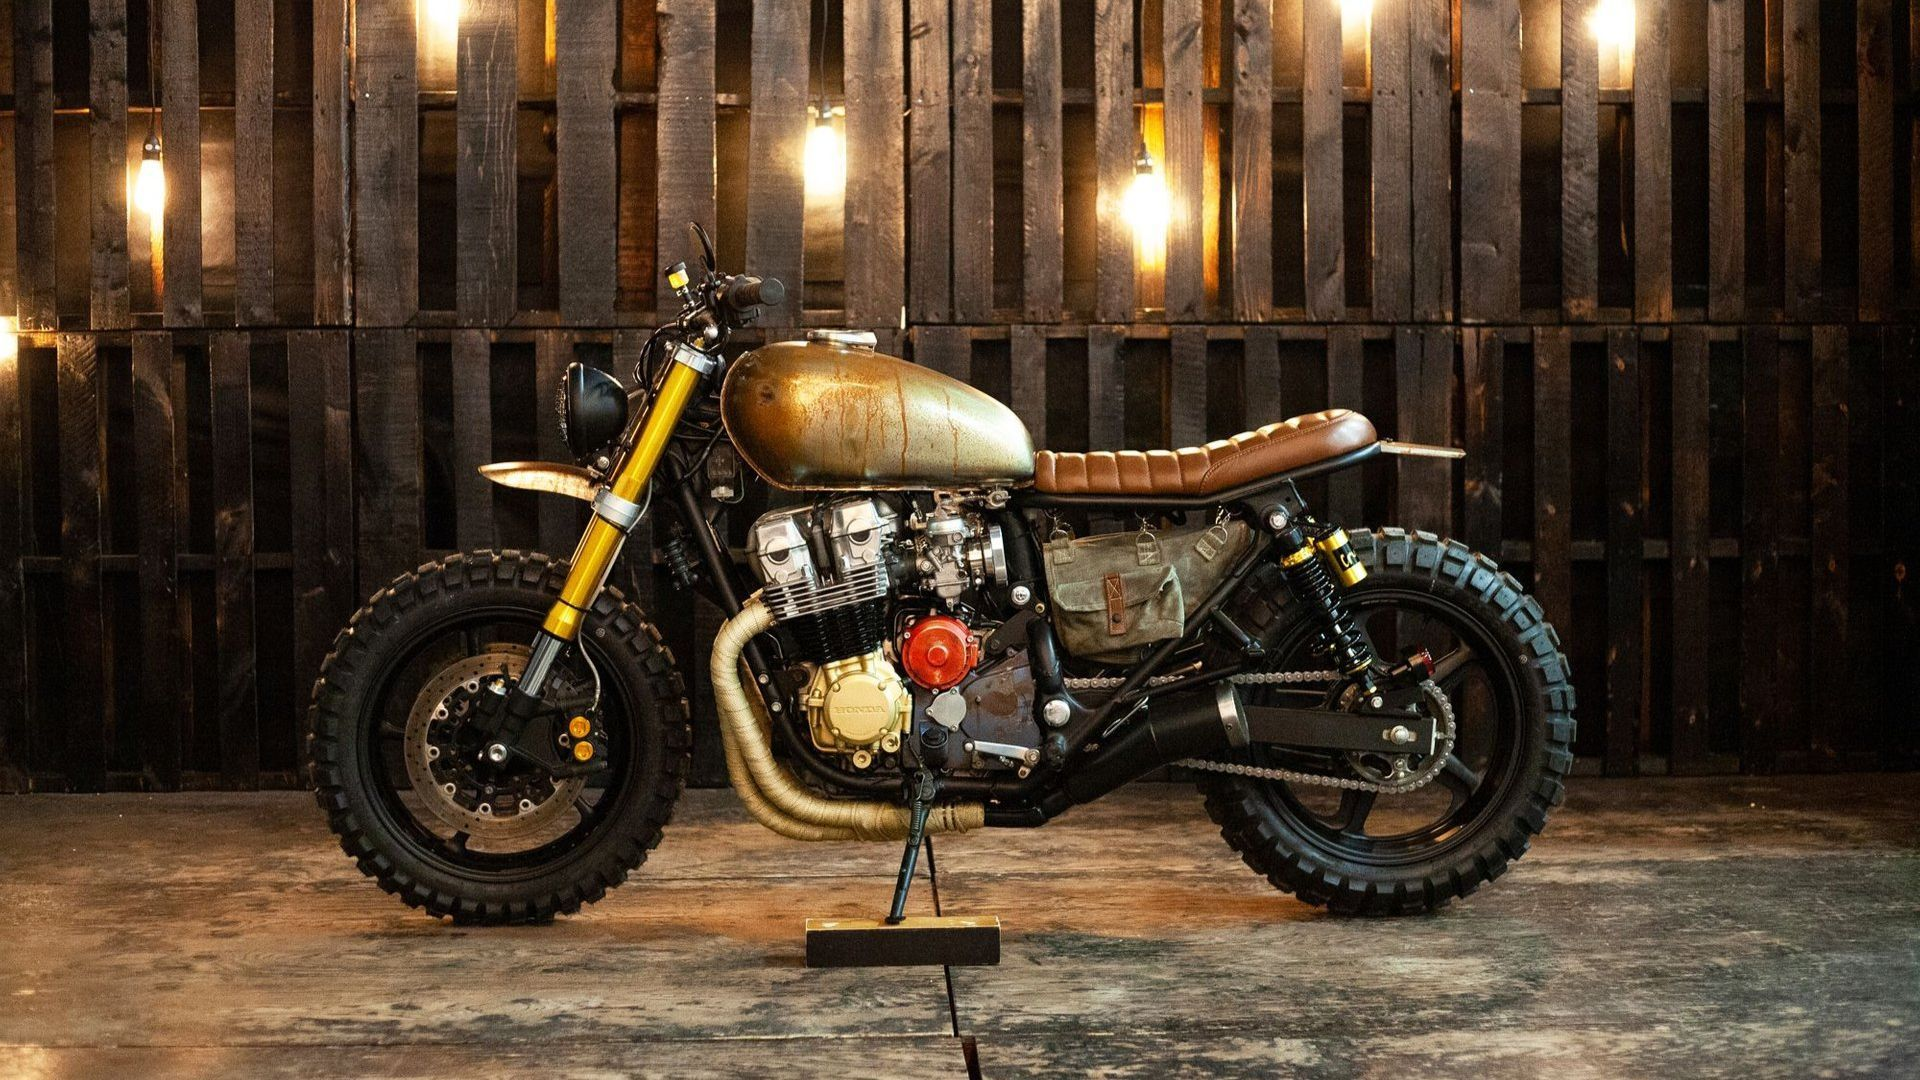 Motorcycle Monday: 1991 Honda Nighthawk Walking Dead Tribute